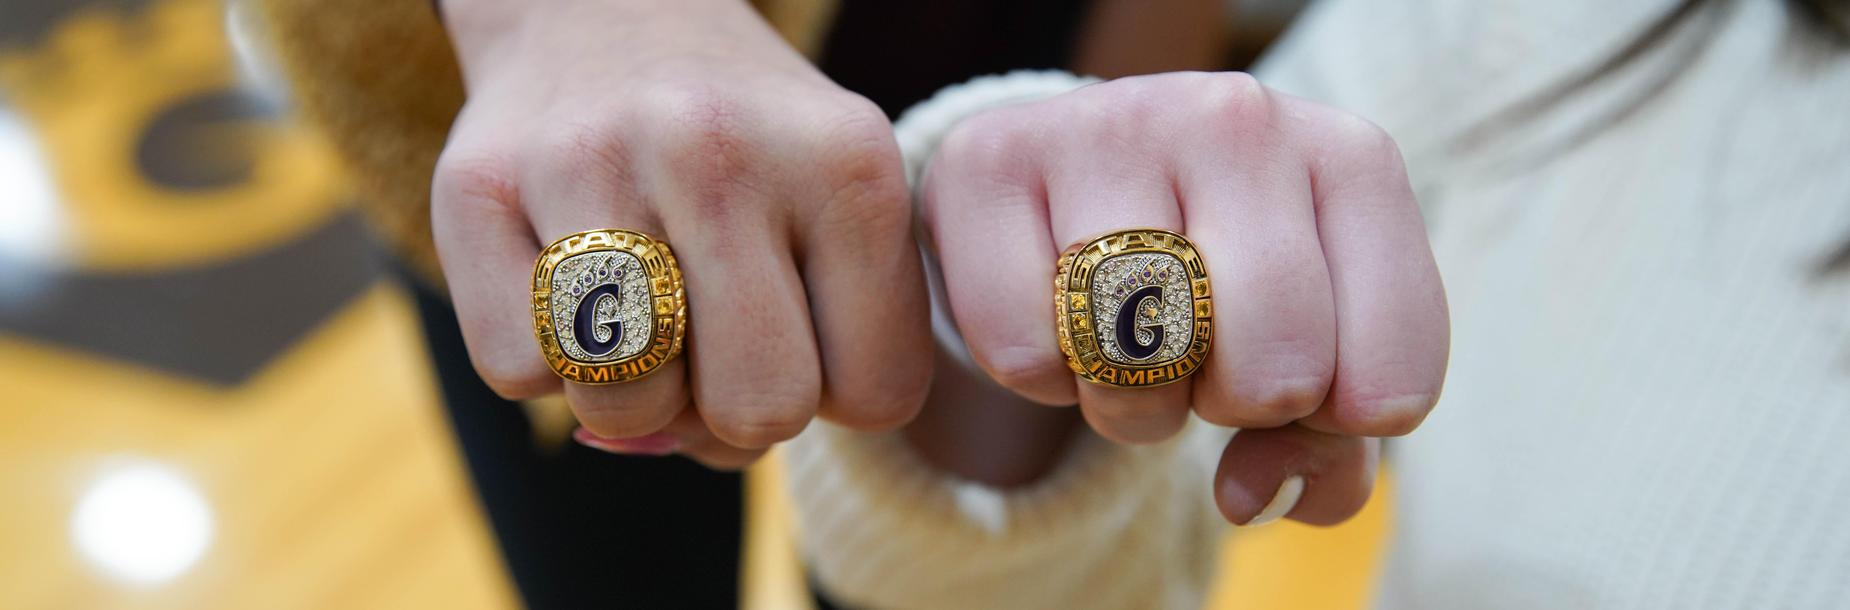 state champ rings